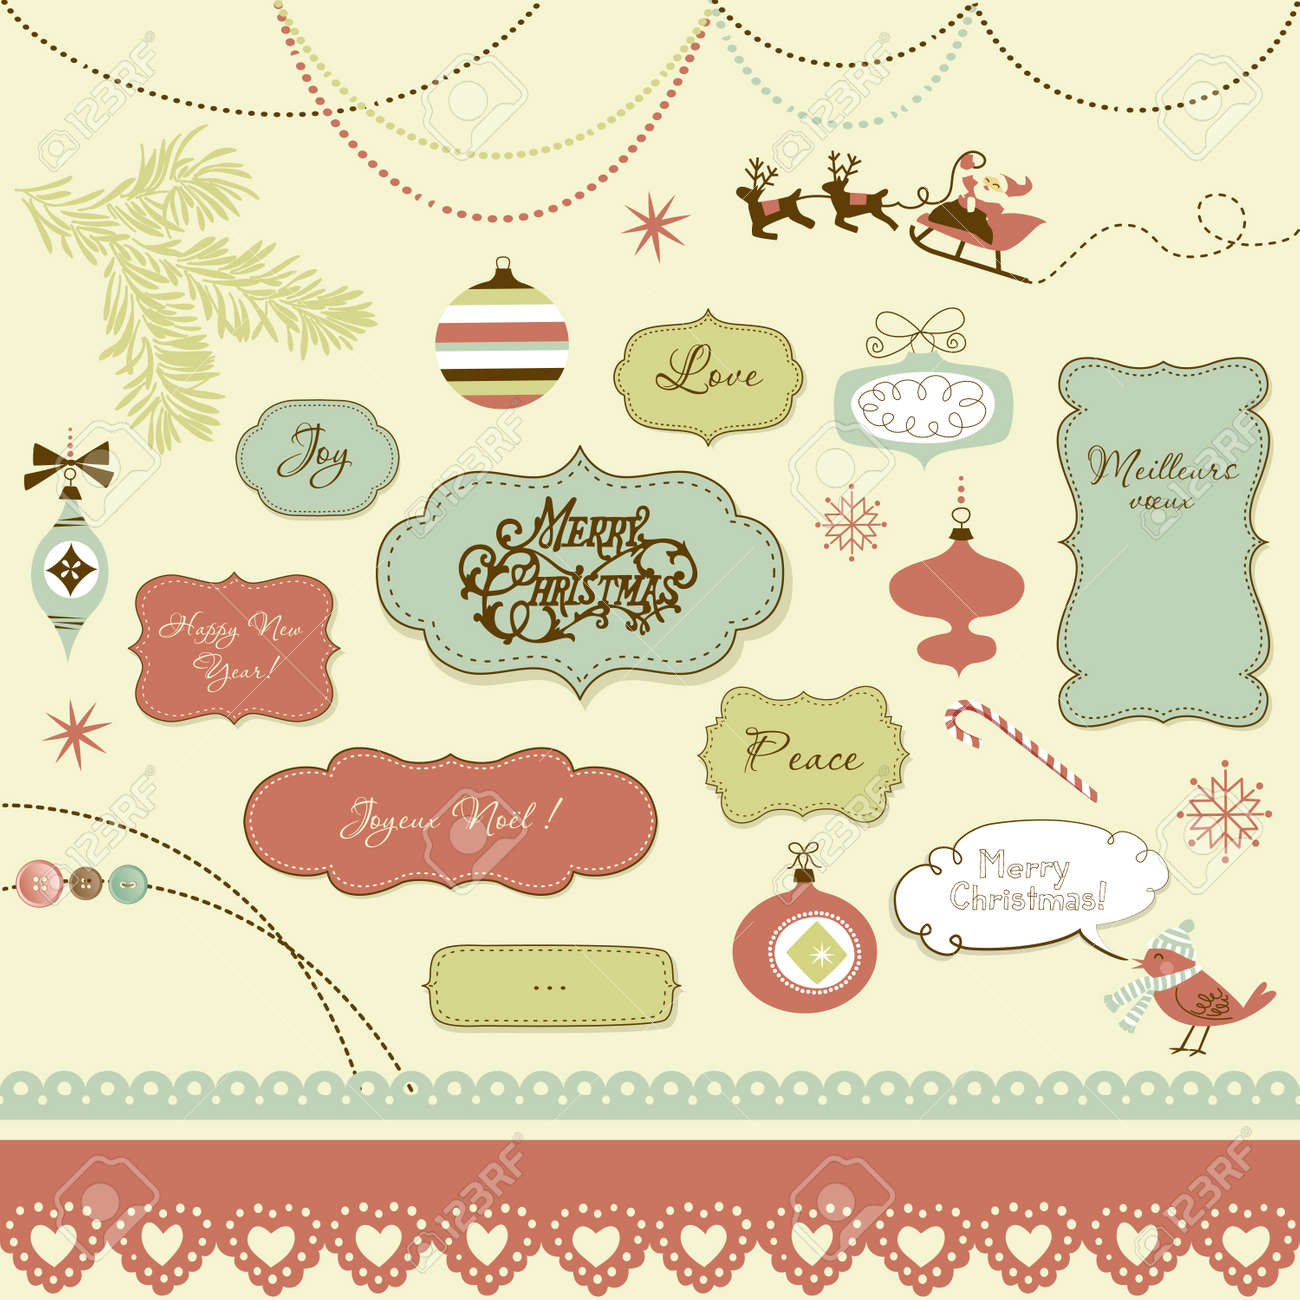 A set of Christmas scrapbook elements, vintage frames, ribbons, ornaments Stock Vector - 16681088